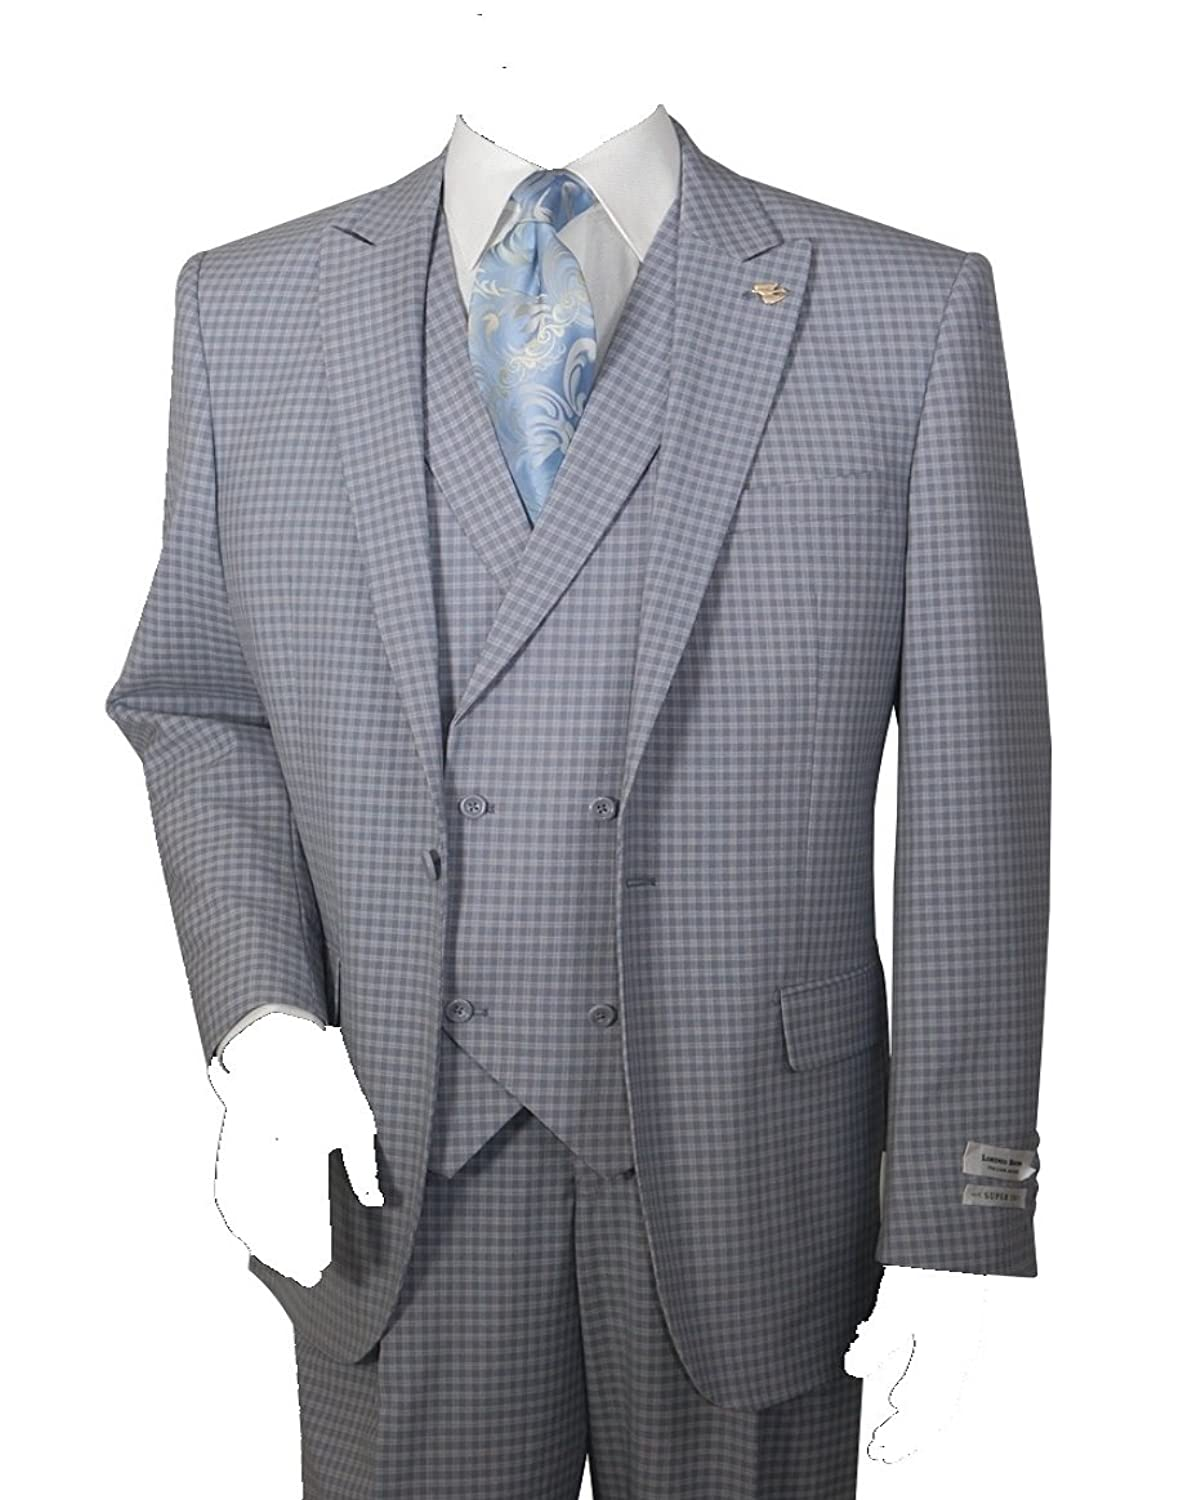 Edwardian Men's Fashion & Clothing Mens 3 Piece Single Button Mini-Plaid Pattern Suit (Gray) $149.99 AT vintagedancer.com